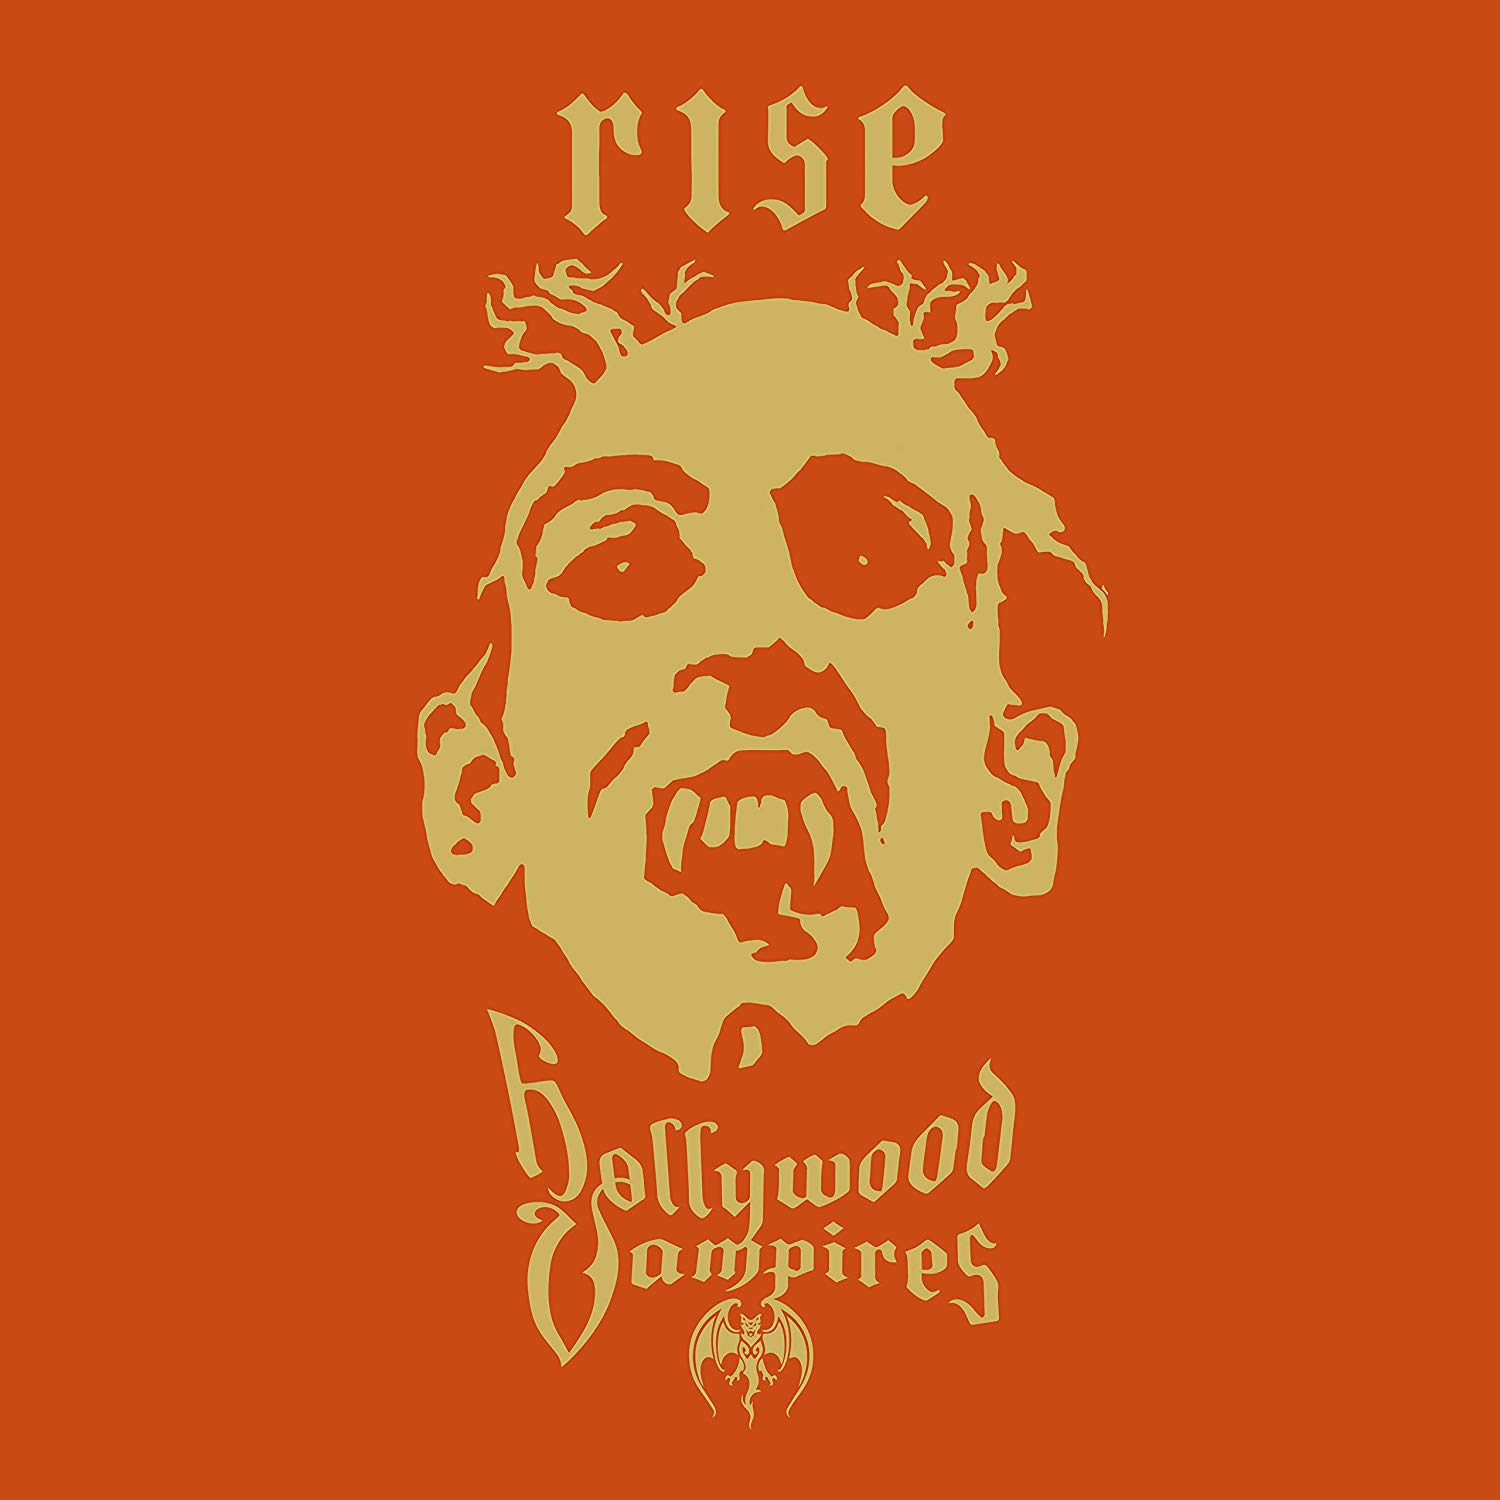 Hollywood Vampires – Cooper, Perry, Depp: New Album Out